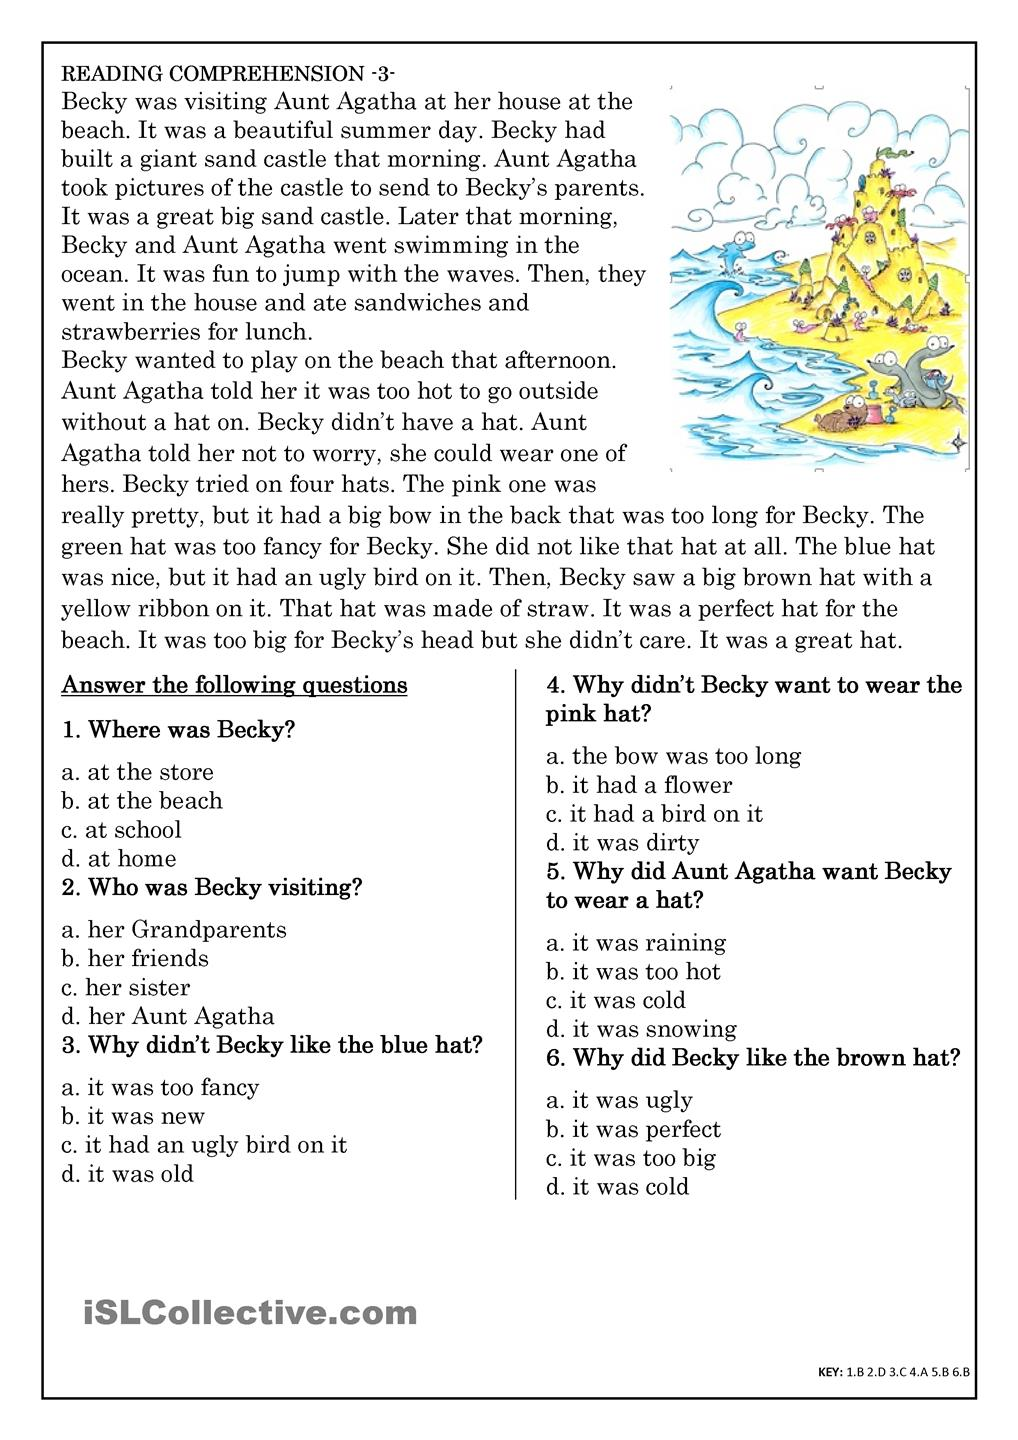 Reading Comprehension For Beginner And Elementary Students 3 Esl